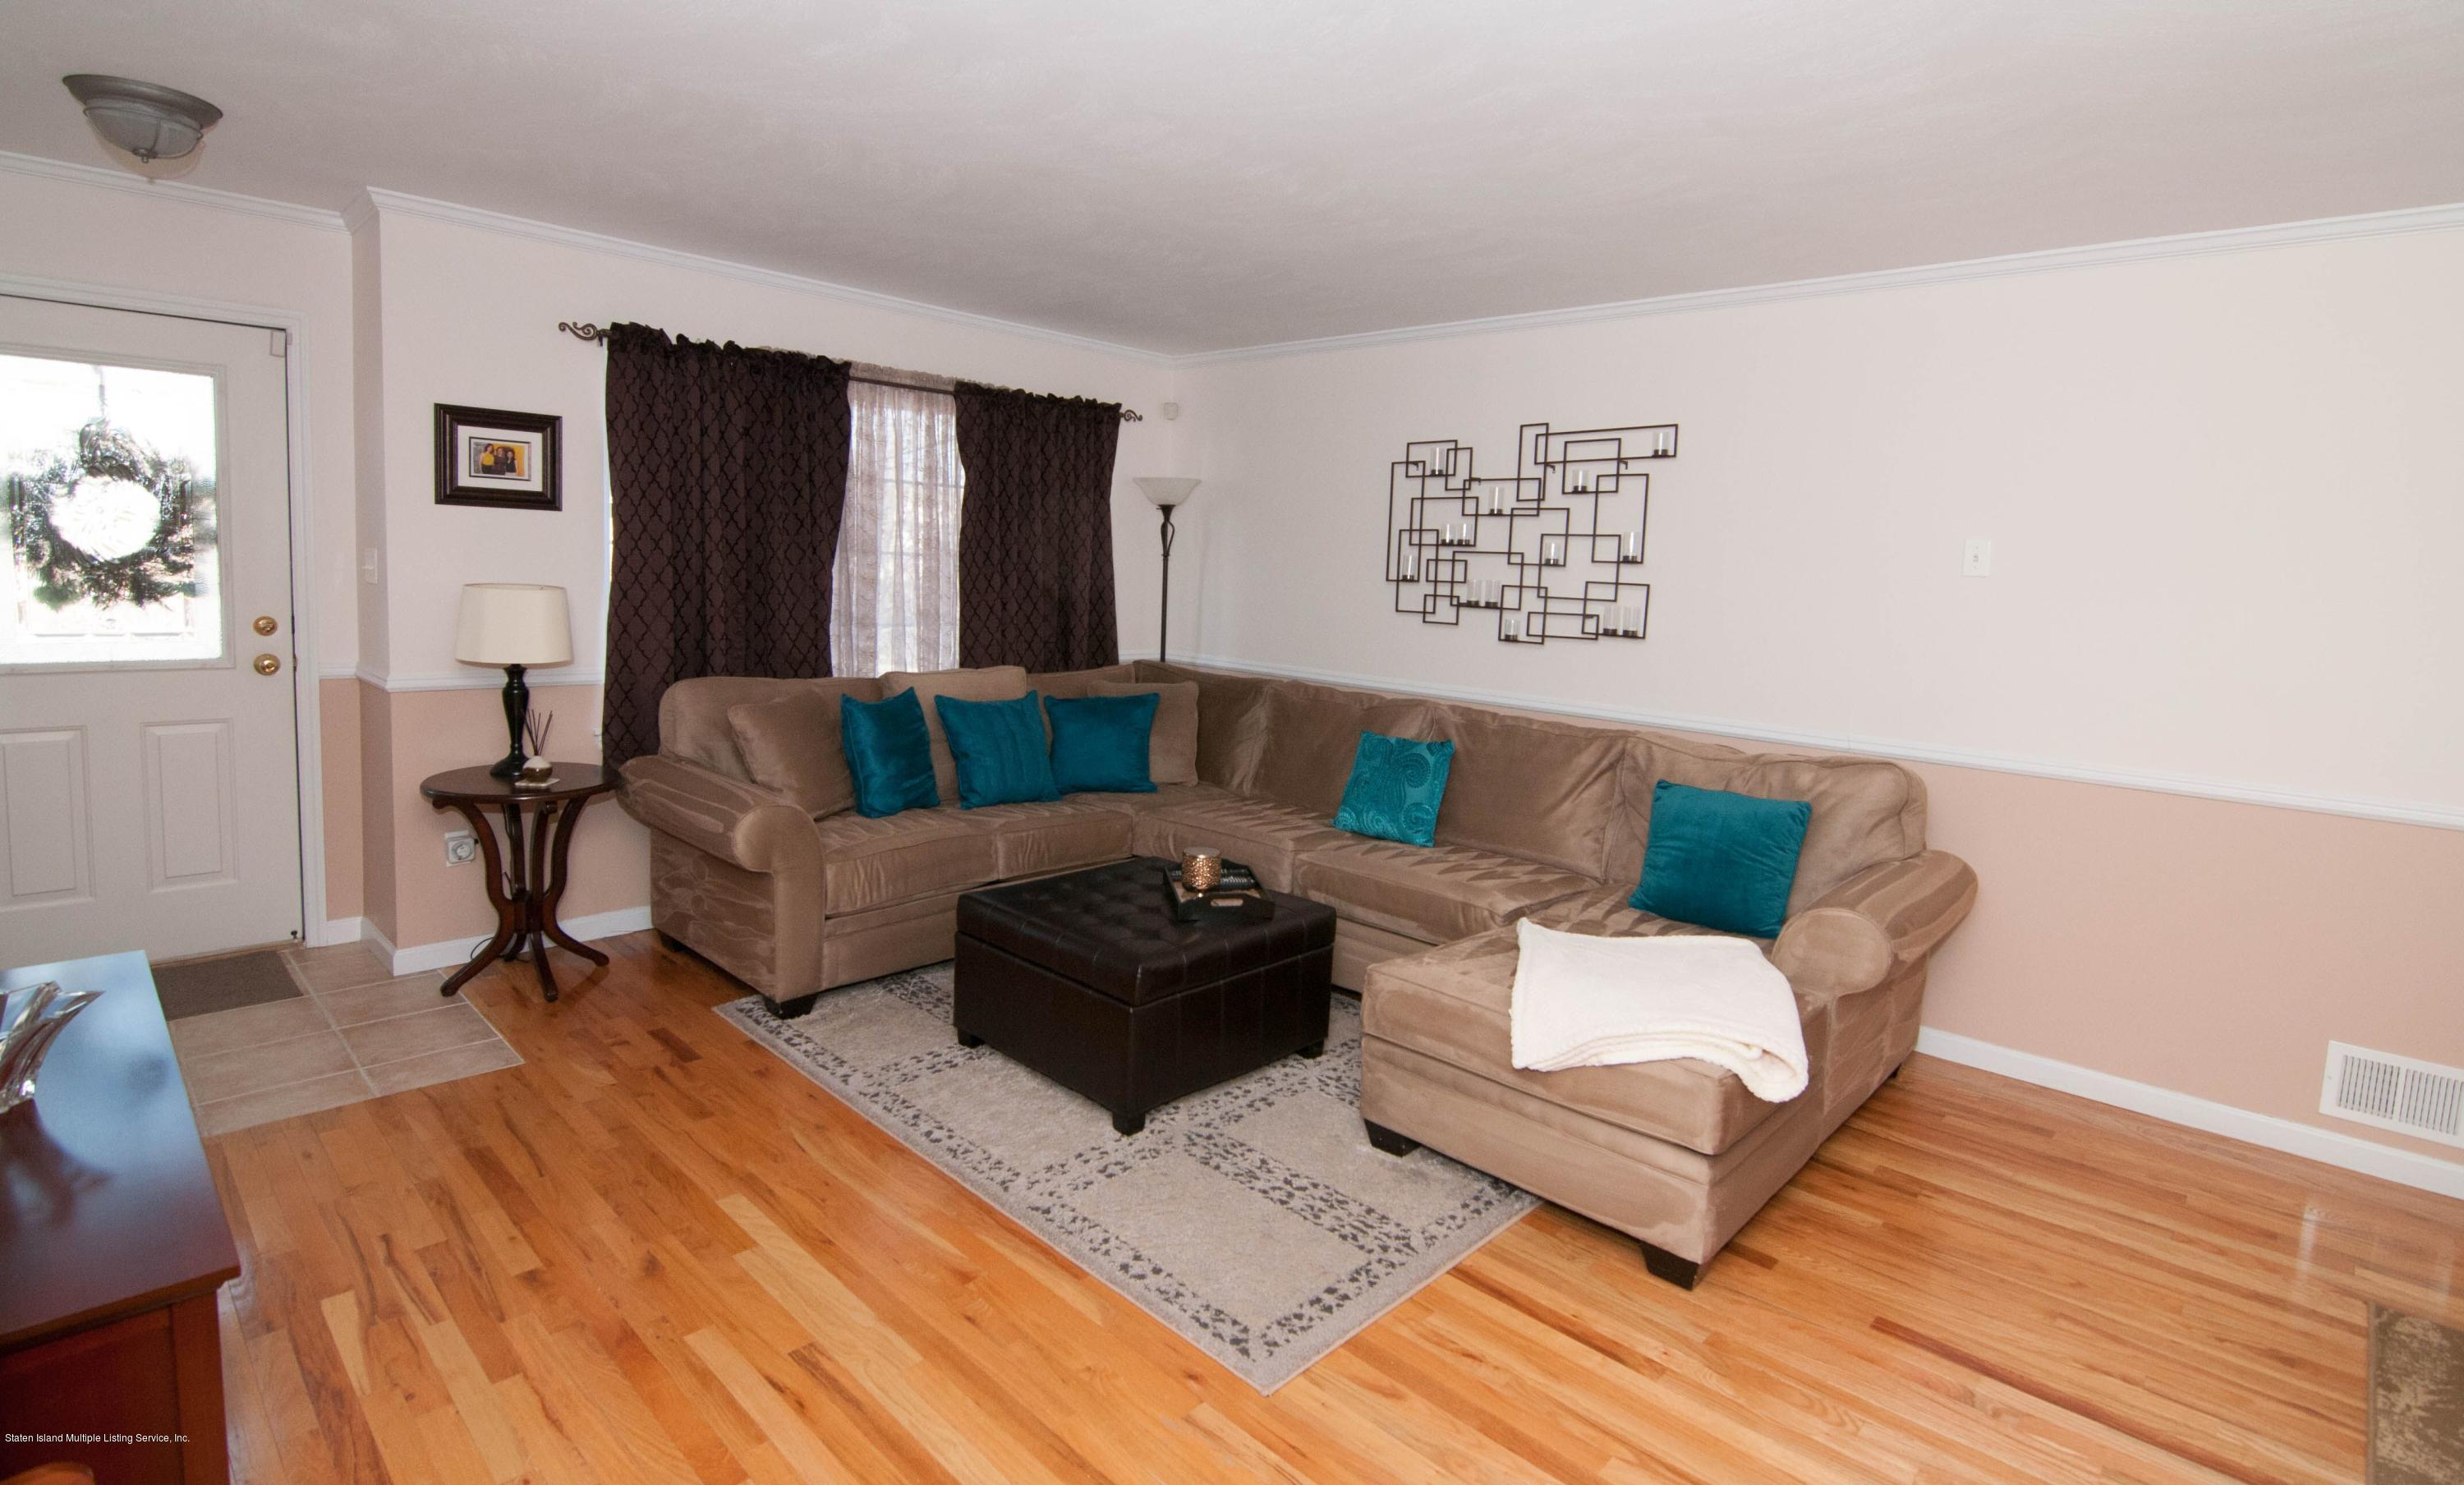 Single Family - Attached 56 Endview Street  Staten Island, NY 10312, MLS-1131439-6